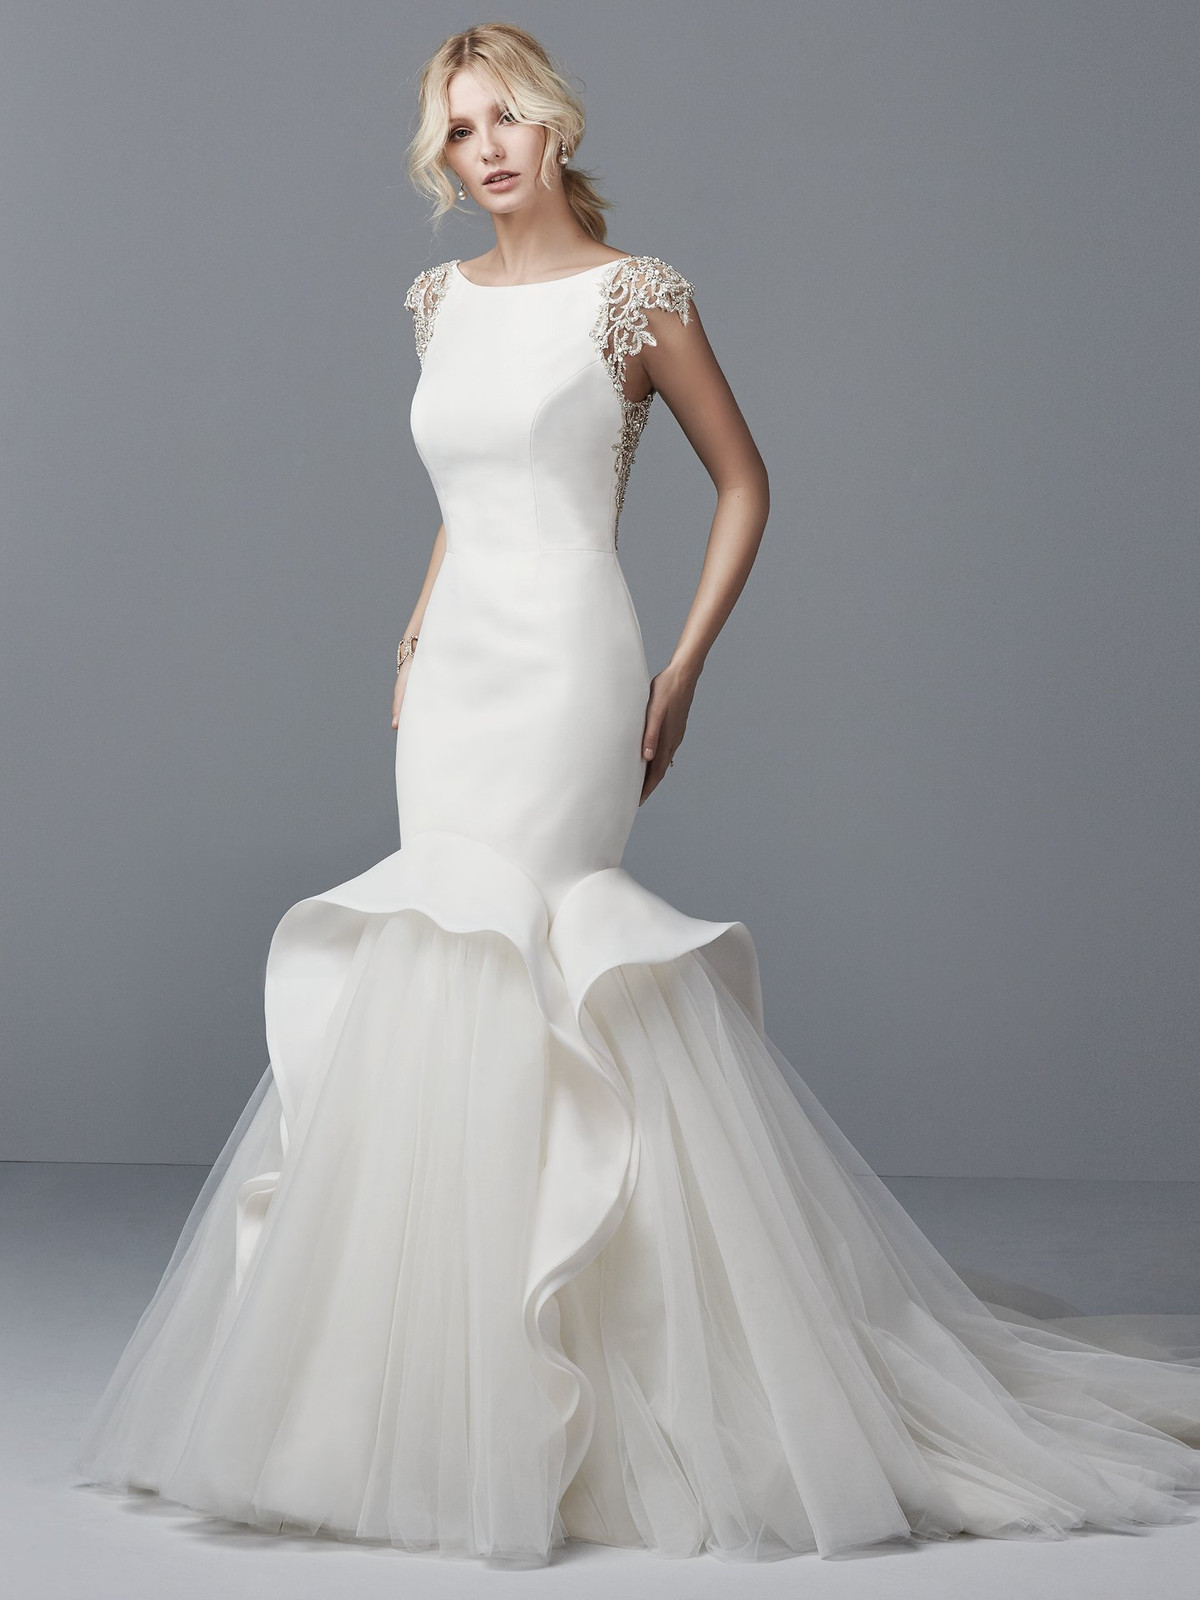 7d4889f63afb ... this Shavon Organza wedding dress features a bateau neckline, with  beaded lace motifs and Swarovski crystals accenting the illusion cap-sleeves  and ...